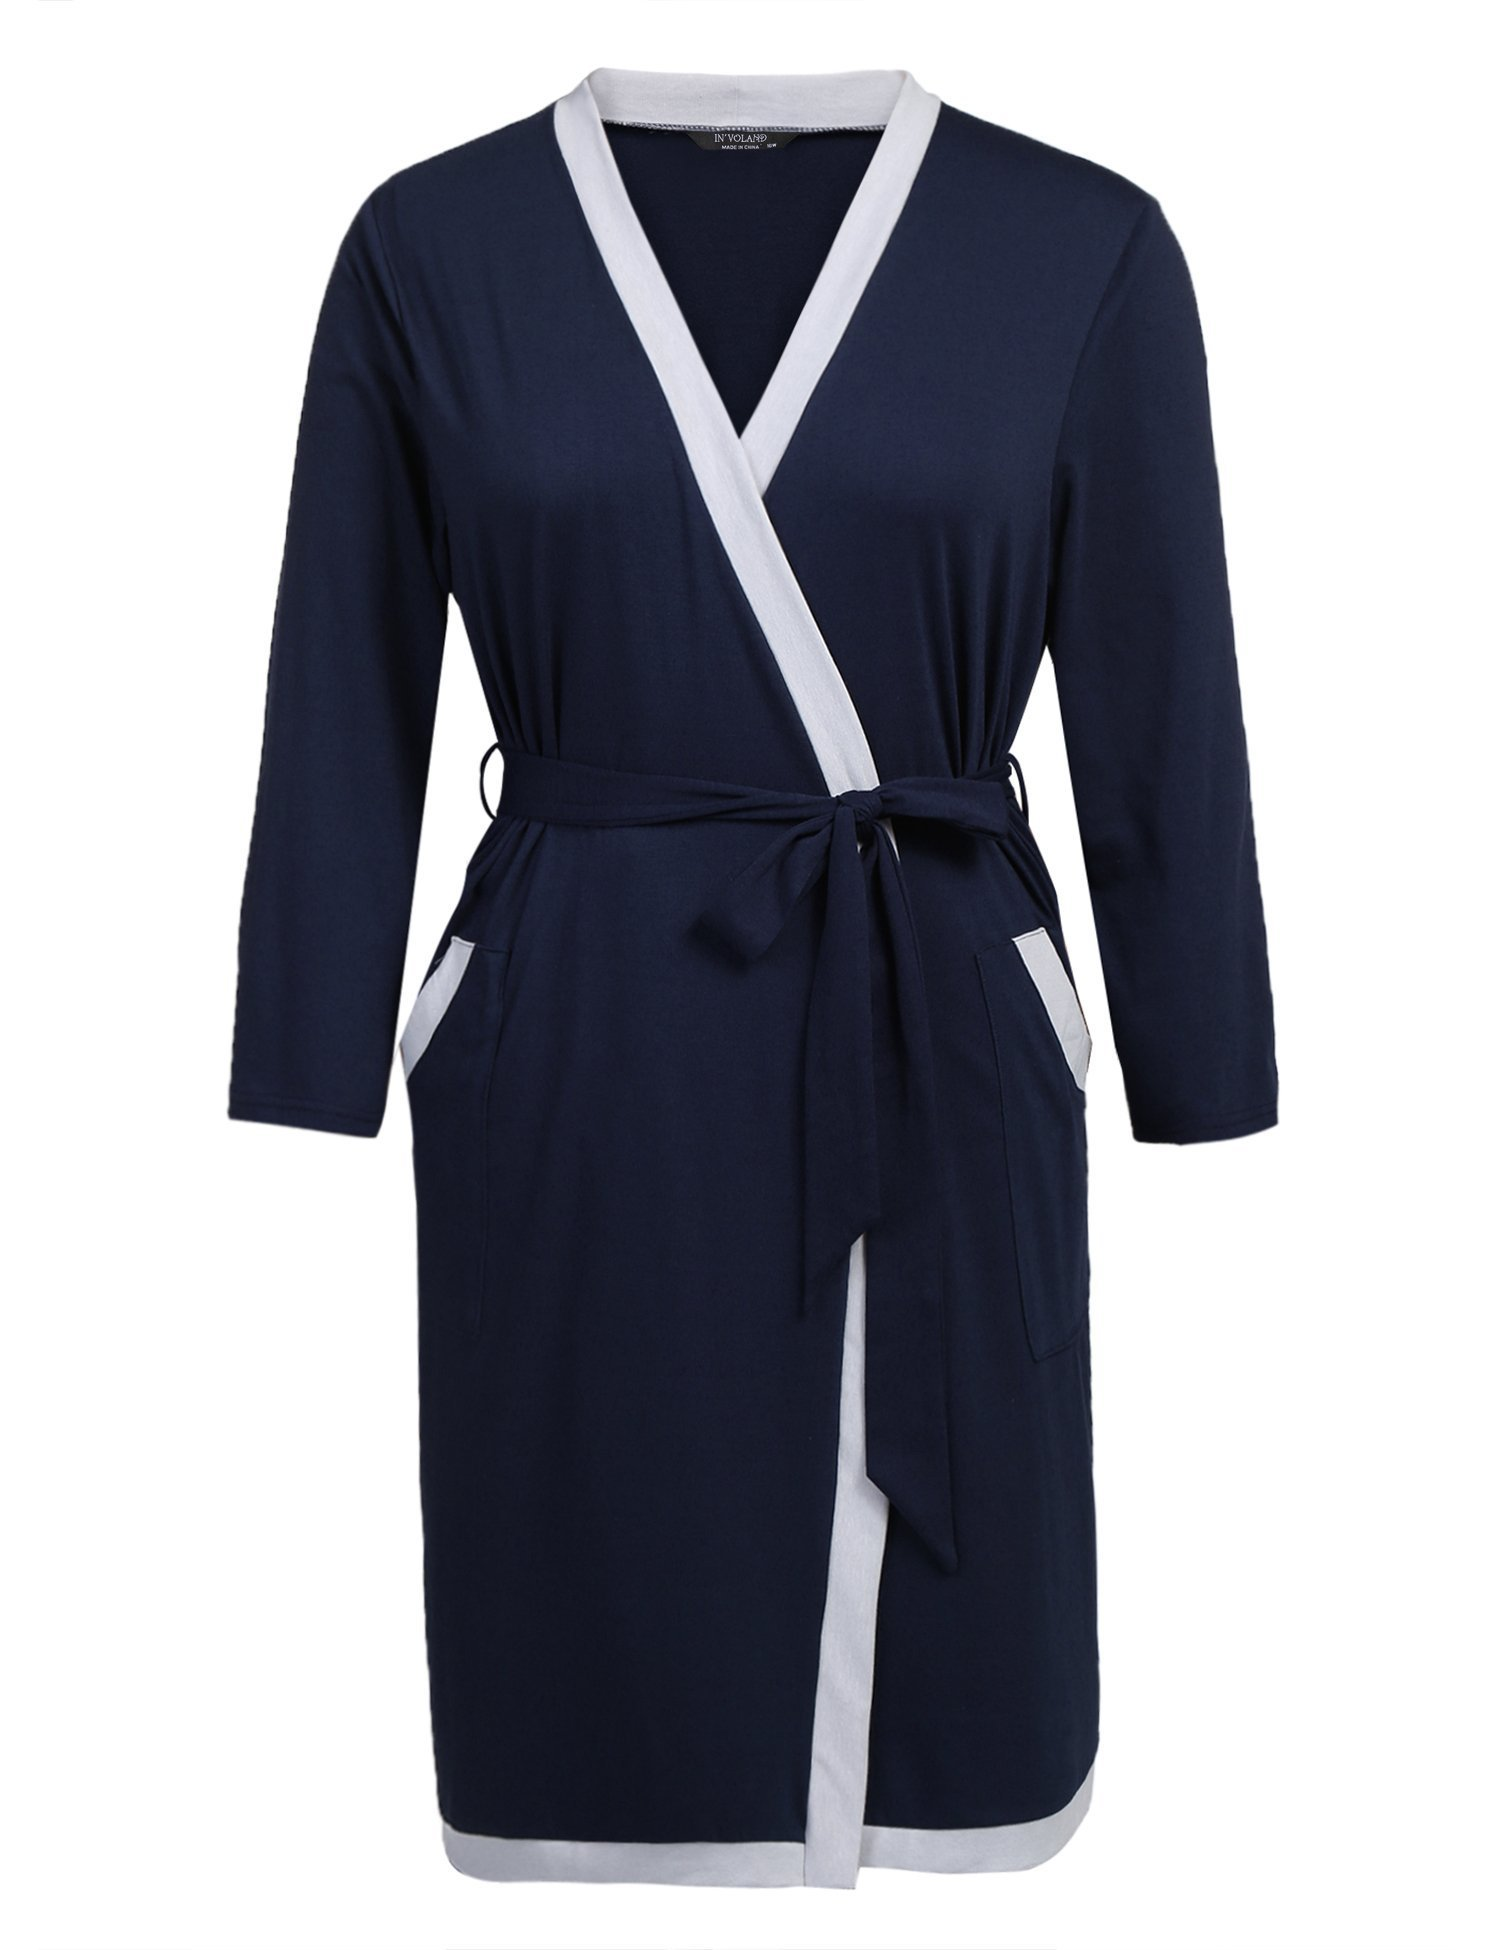 IN'VOLAND Plus Size Women Waffle Bathrobe Lightweight Kimono Robes Spa Robes Sleepwear Loungewear